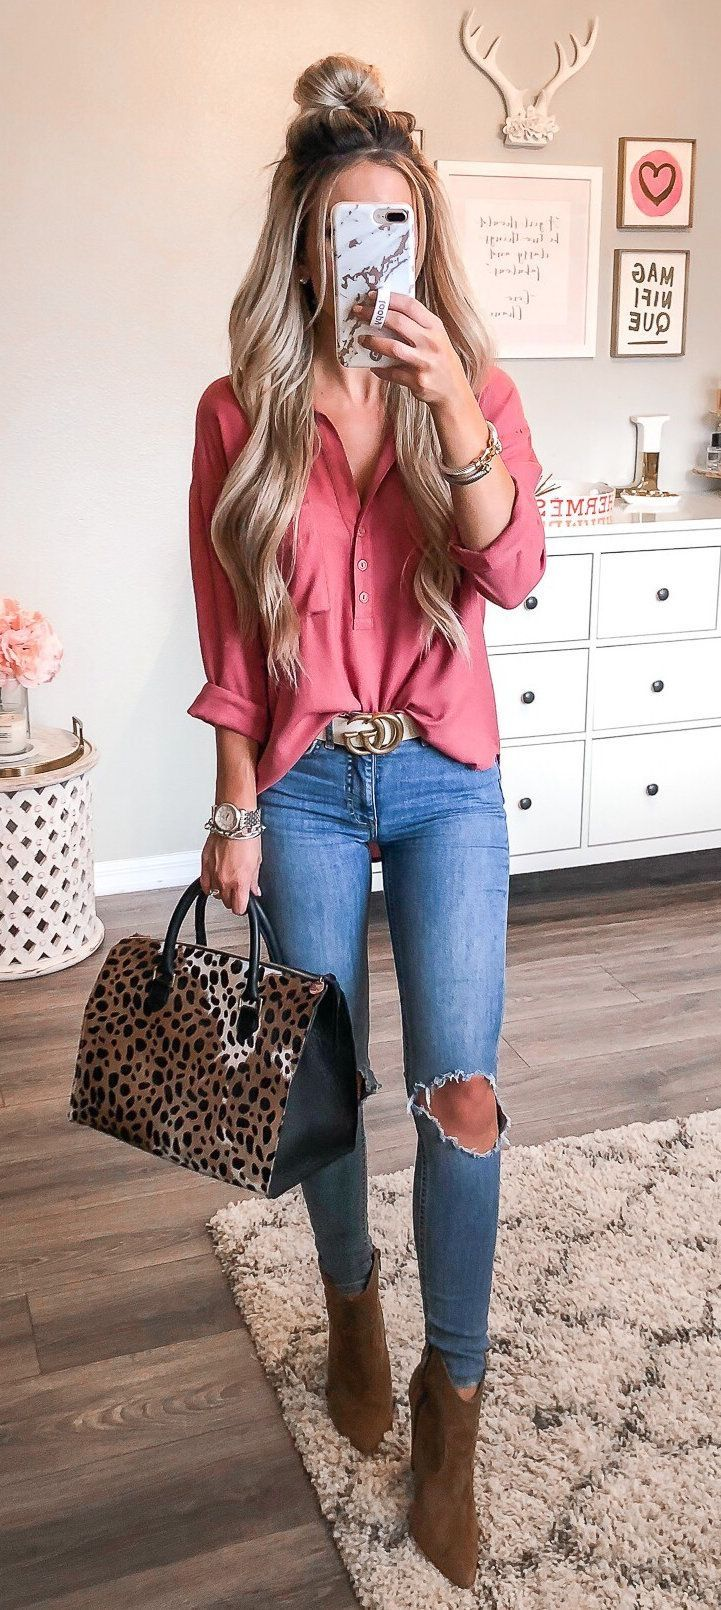 25 Great Image of Cute Outfits For Women You Should Already Know